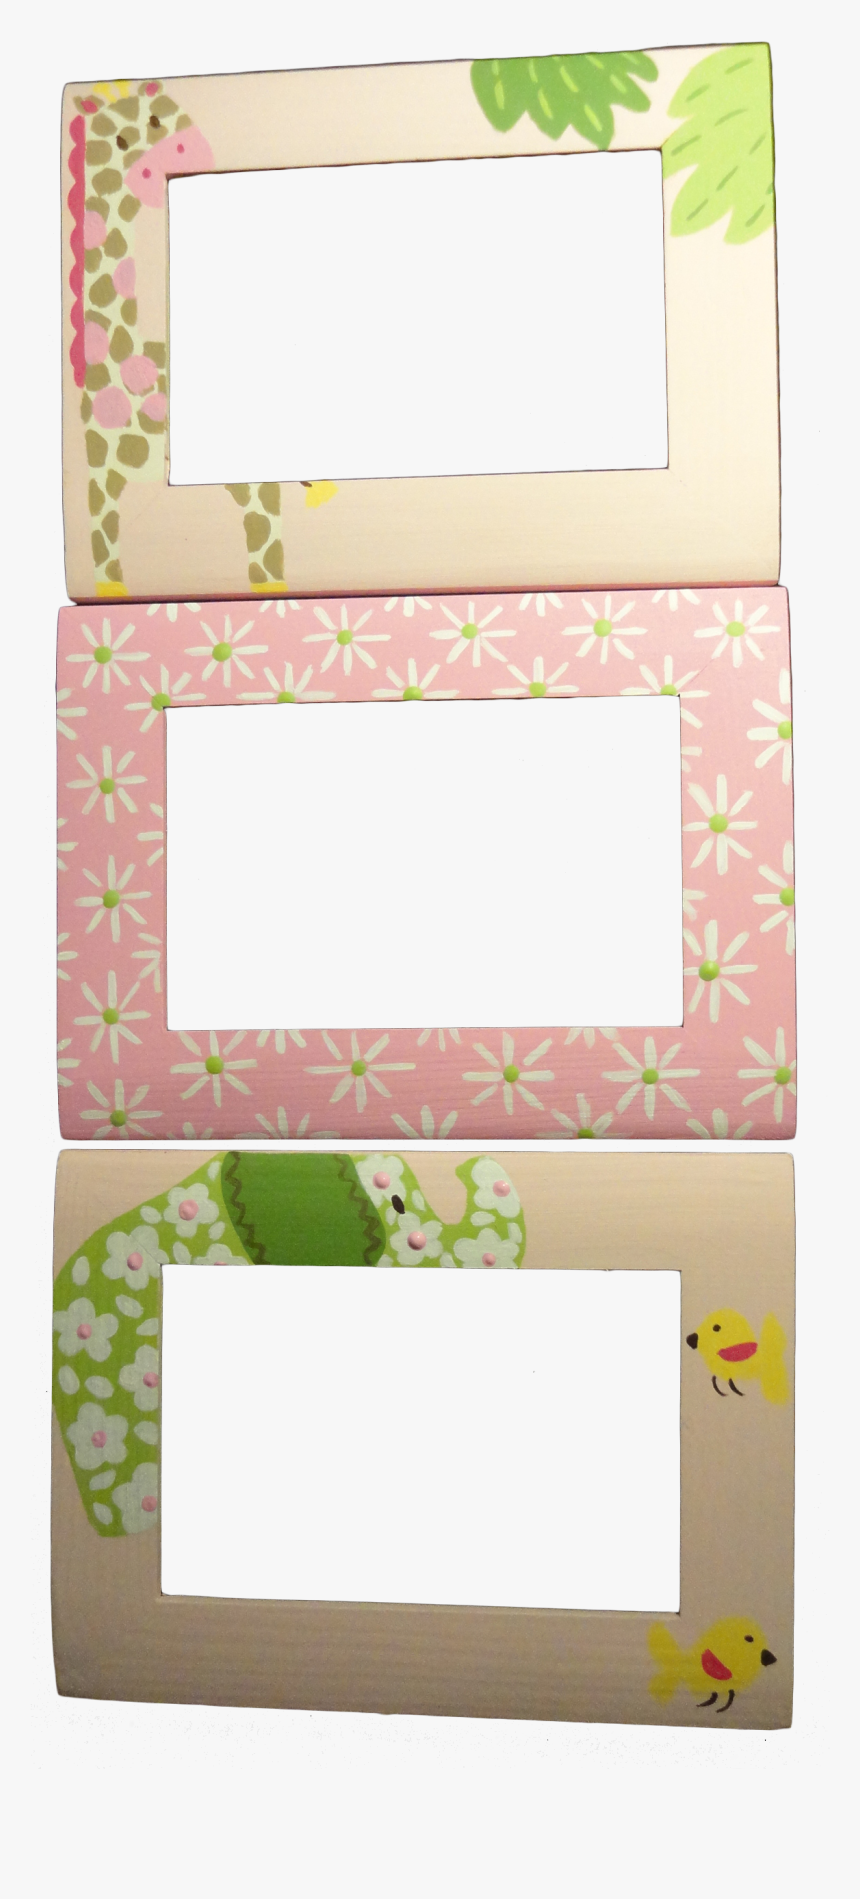 Hanging Pink Picture Frame Transparent, HD Png Download, Free Download